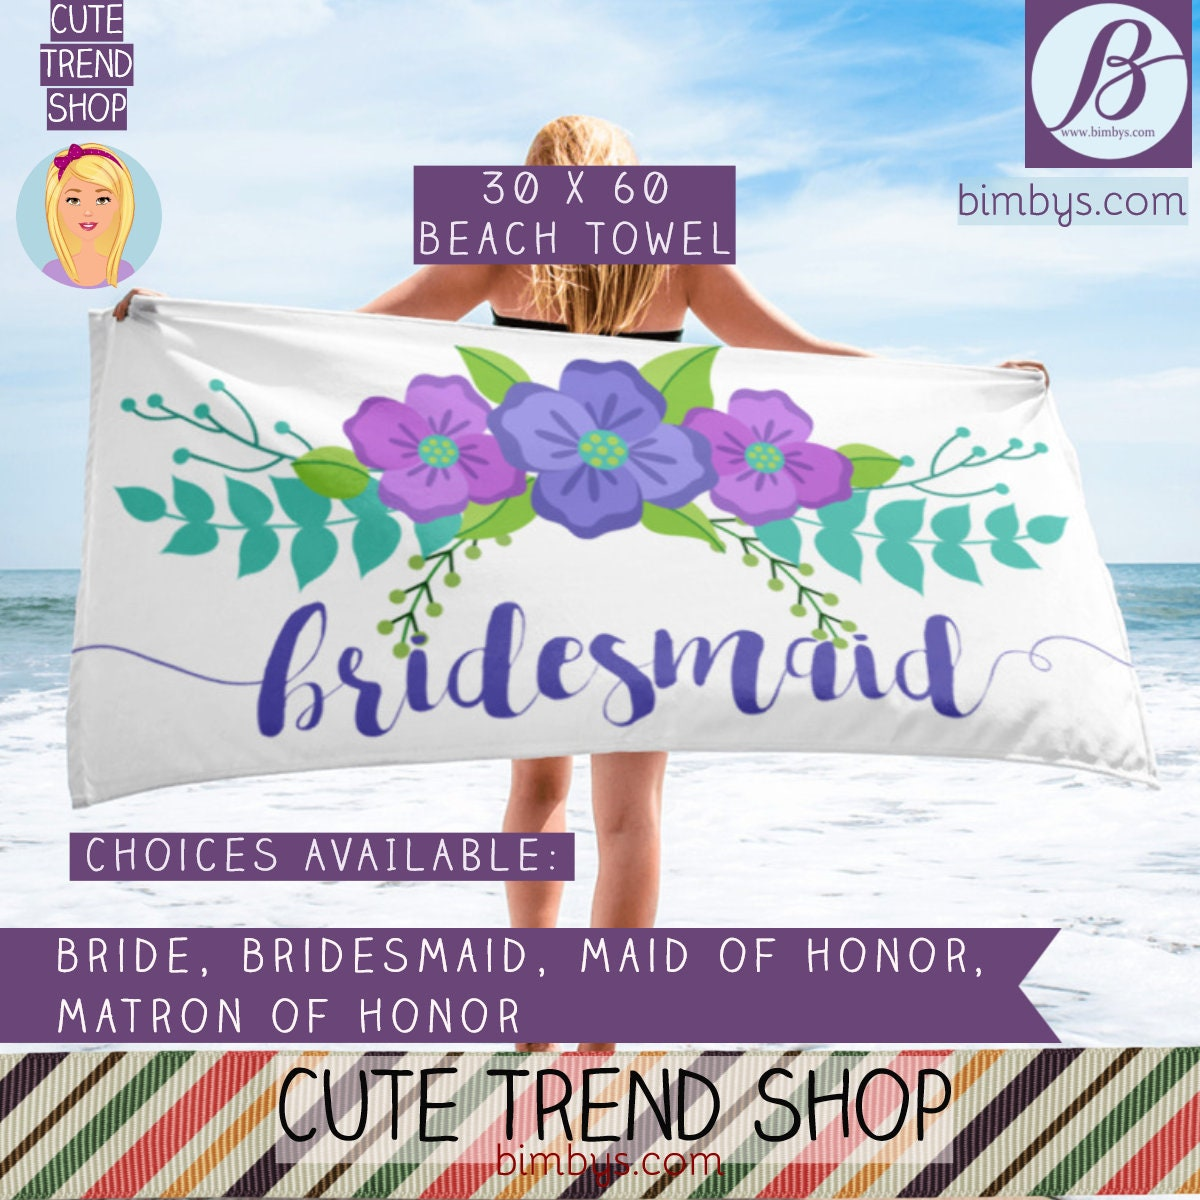 bride beach towel bride to be bridal shower gift wedding bachelorette beach towels bride maid of honor matron of honor and bridesmaid